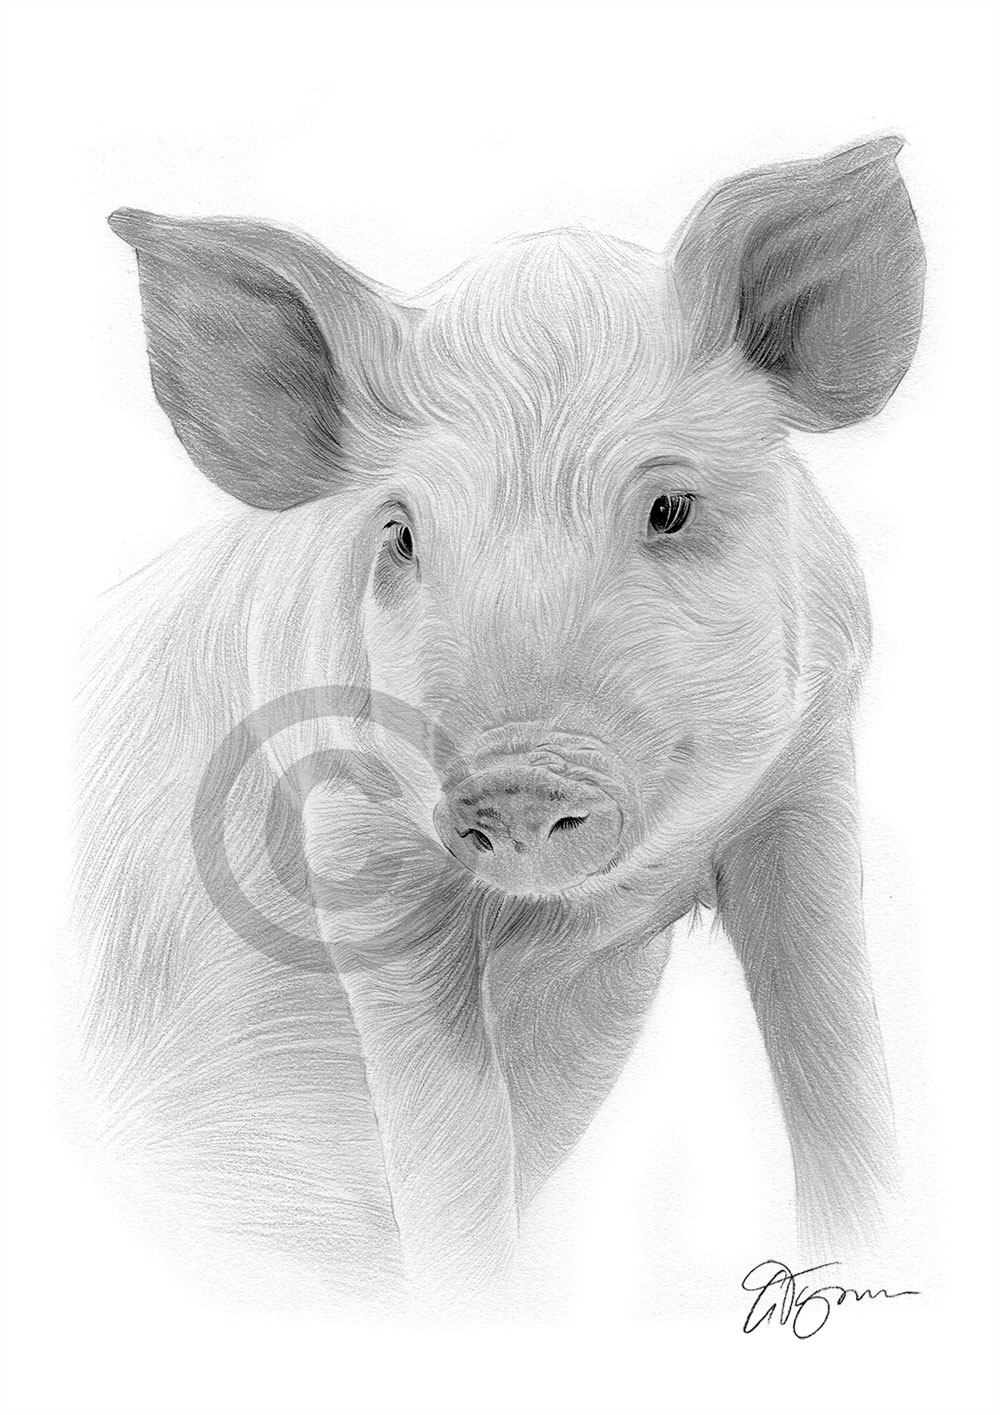 Pig pencil drawing by artist Gary Tymon